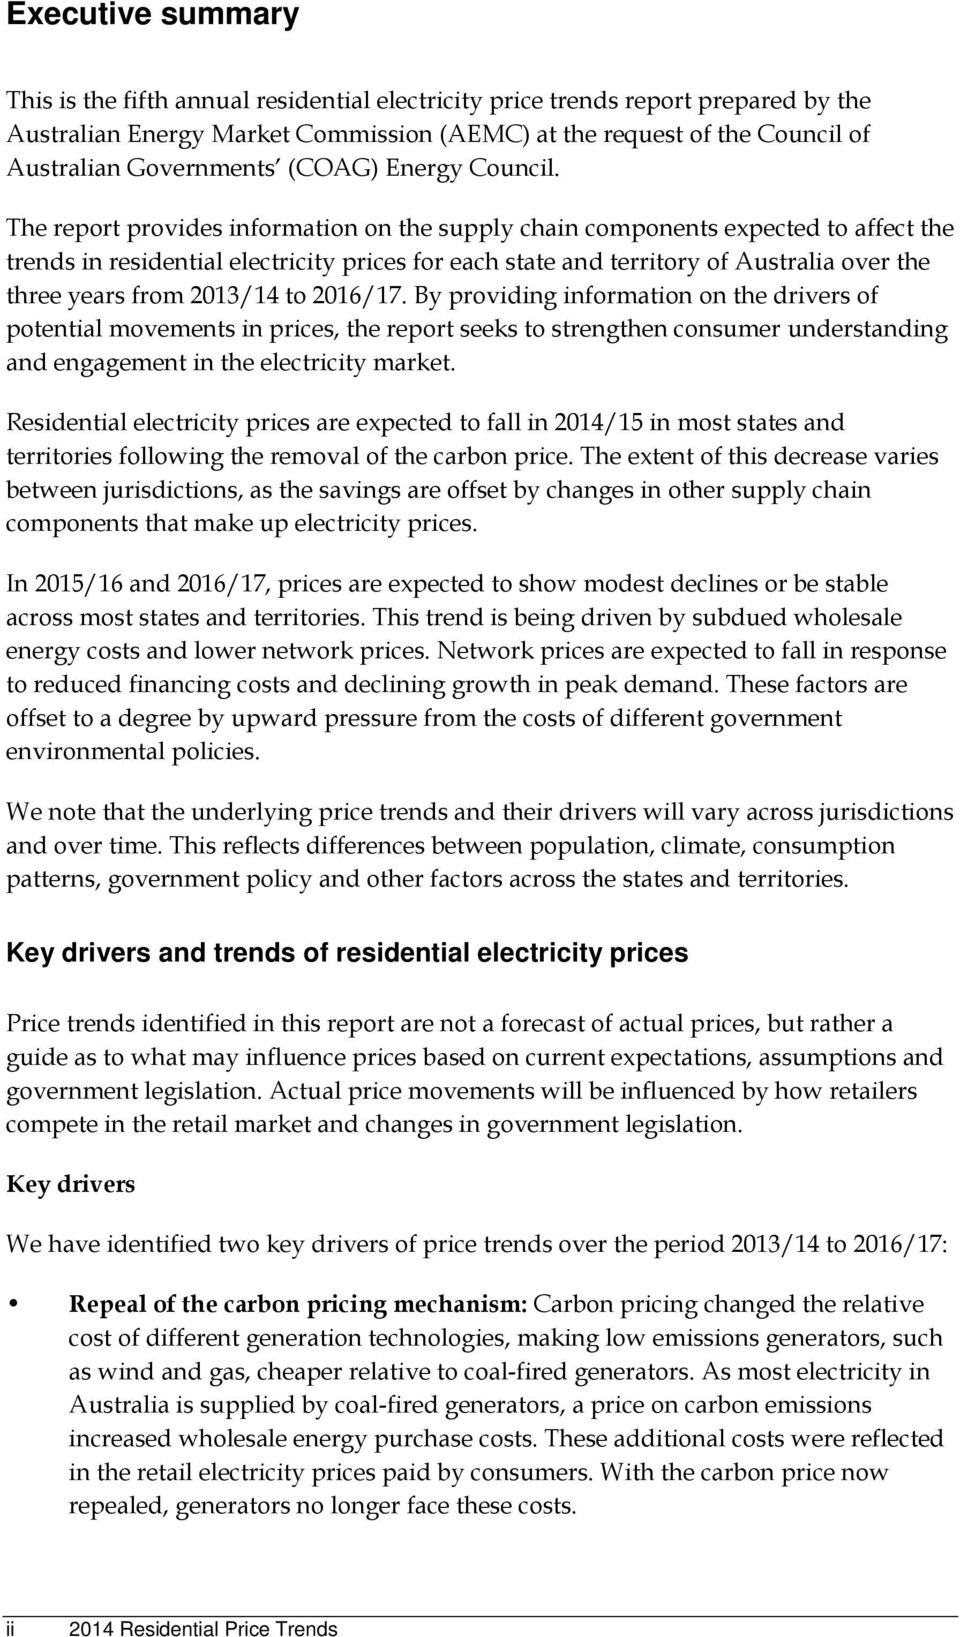 The report provides information on the supply chain components expected to affect the trends in residential electricity prices for each state and territory of Australia over the three years from